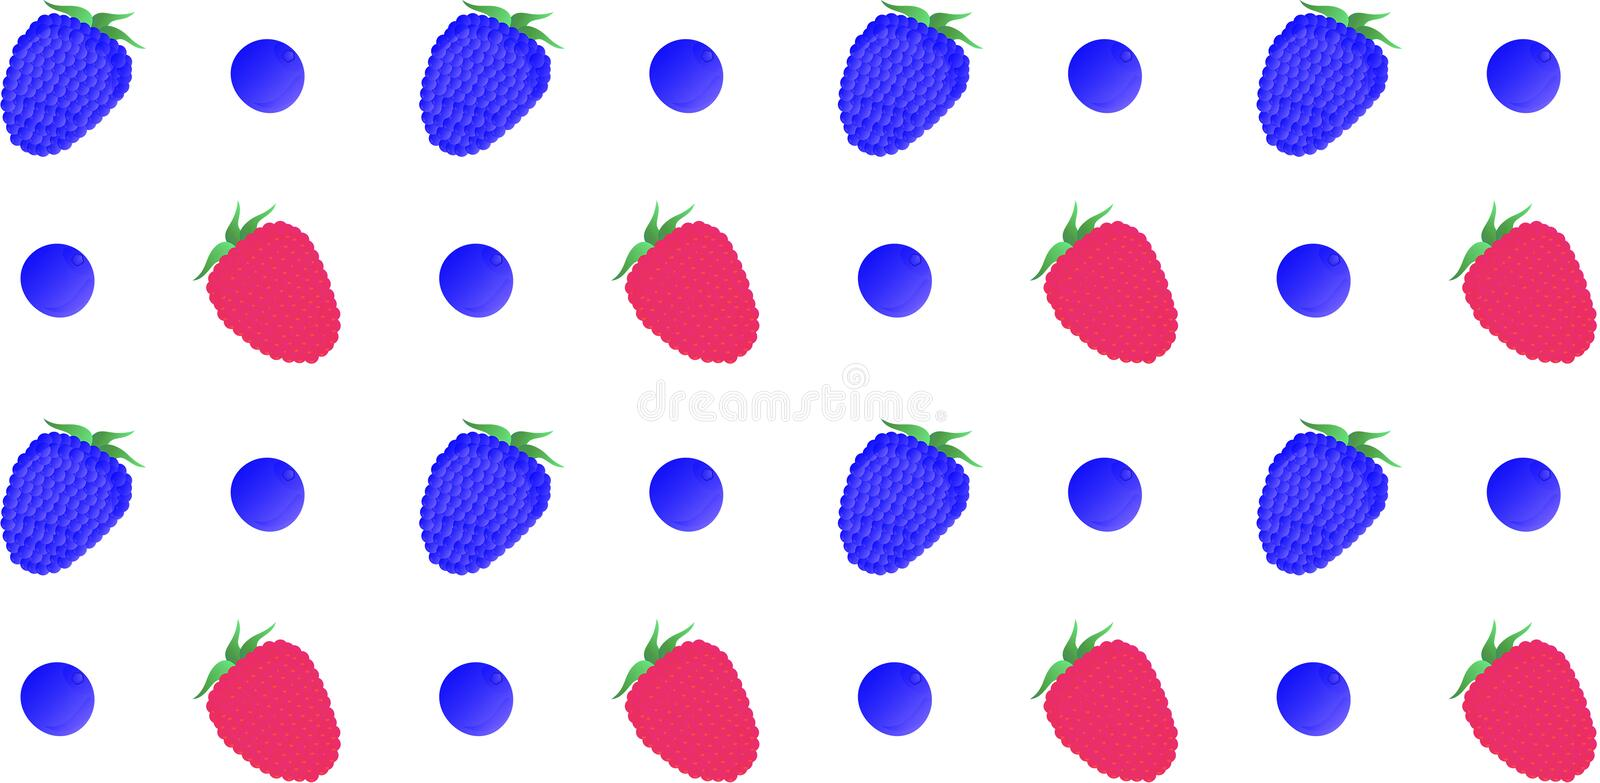 Seamless pattern. Raspberry, blackberry and blueberry berries on a white background. Vector stock illustration